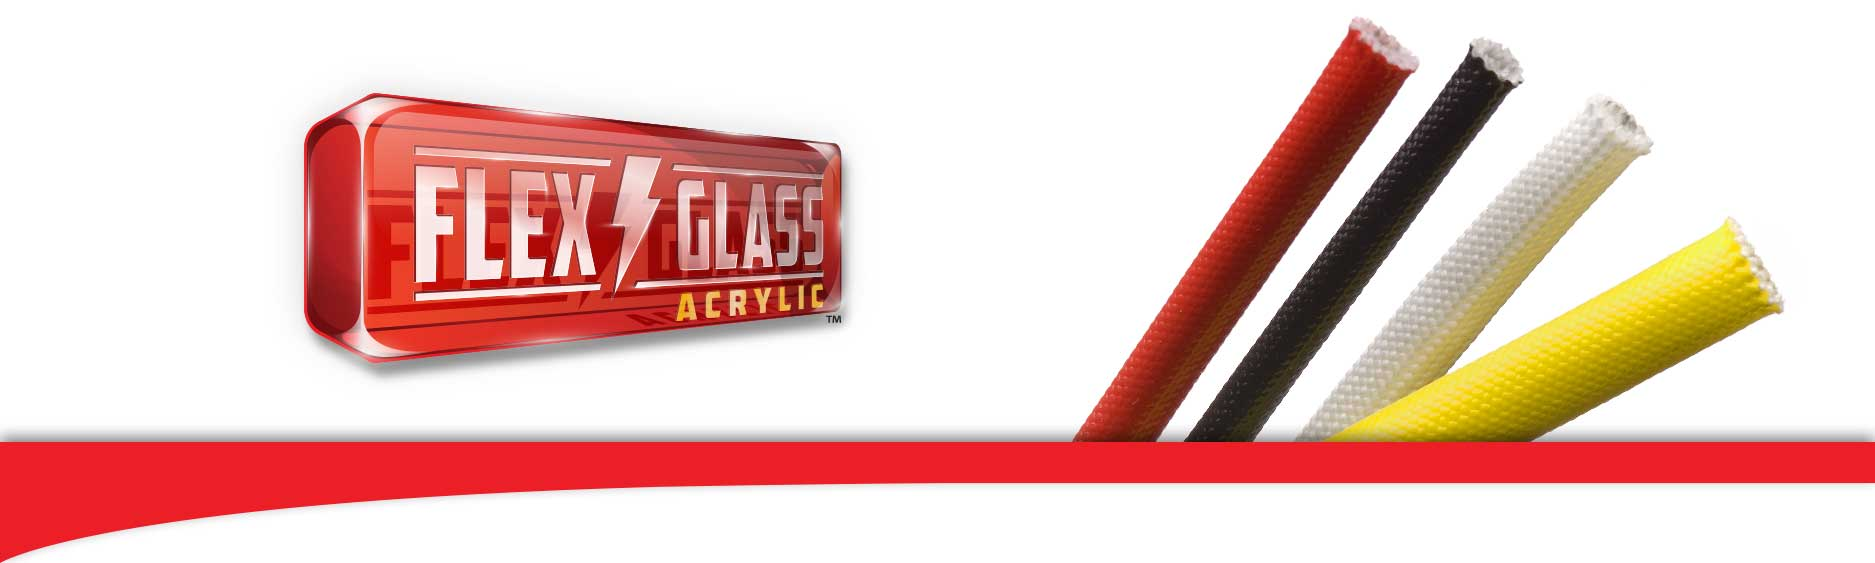 Acrylic Flex Glass A